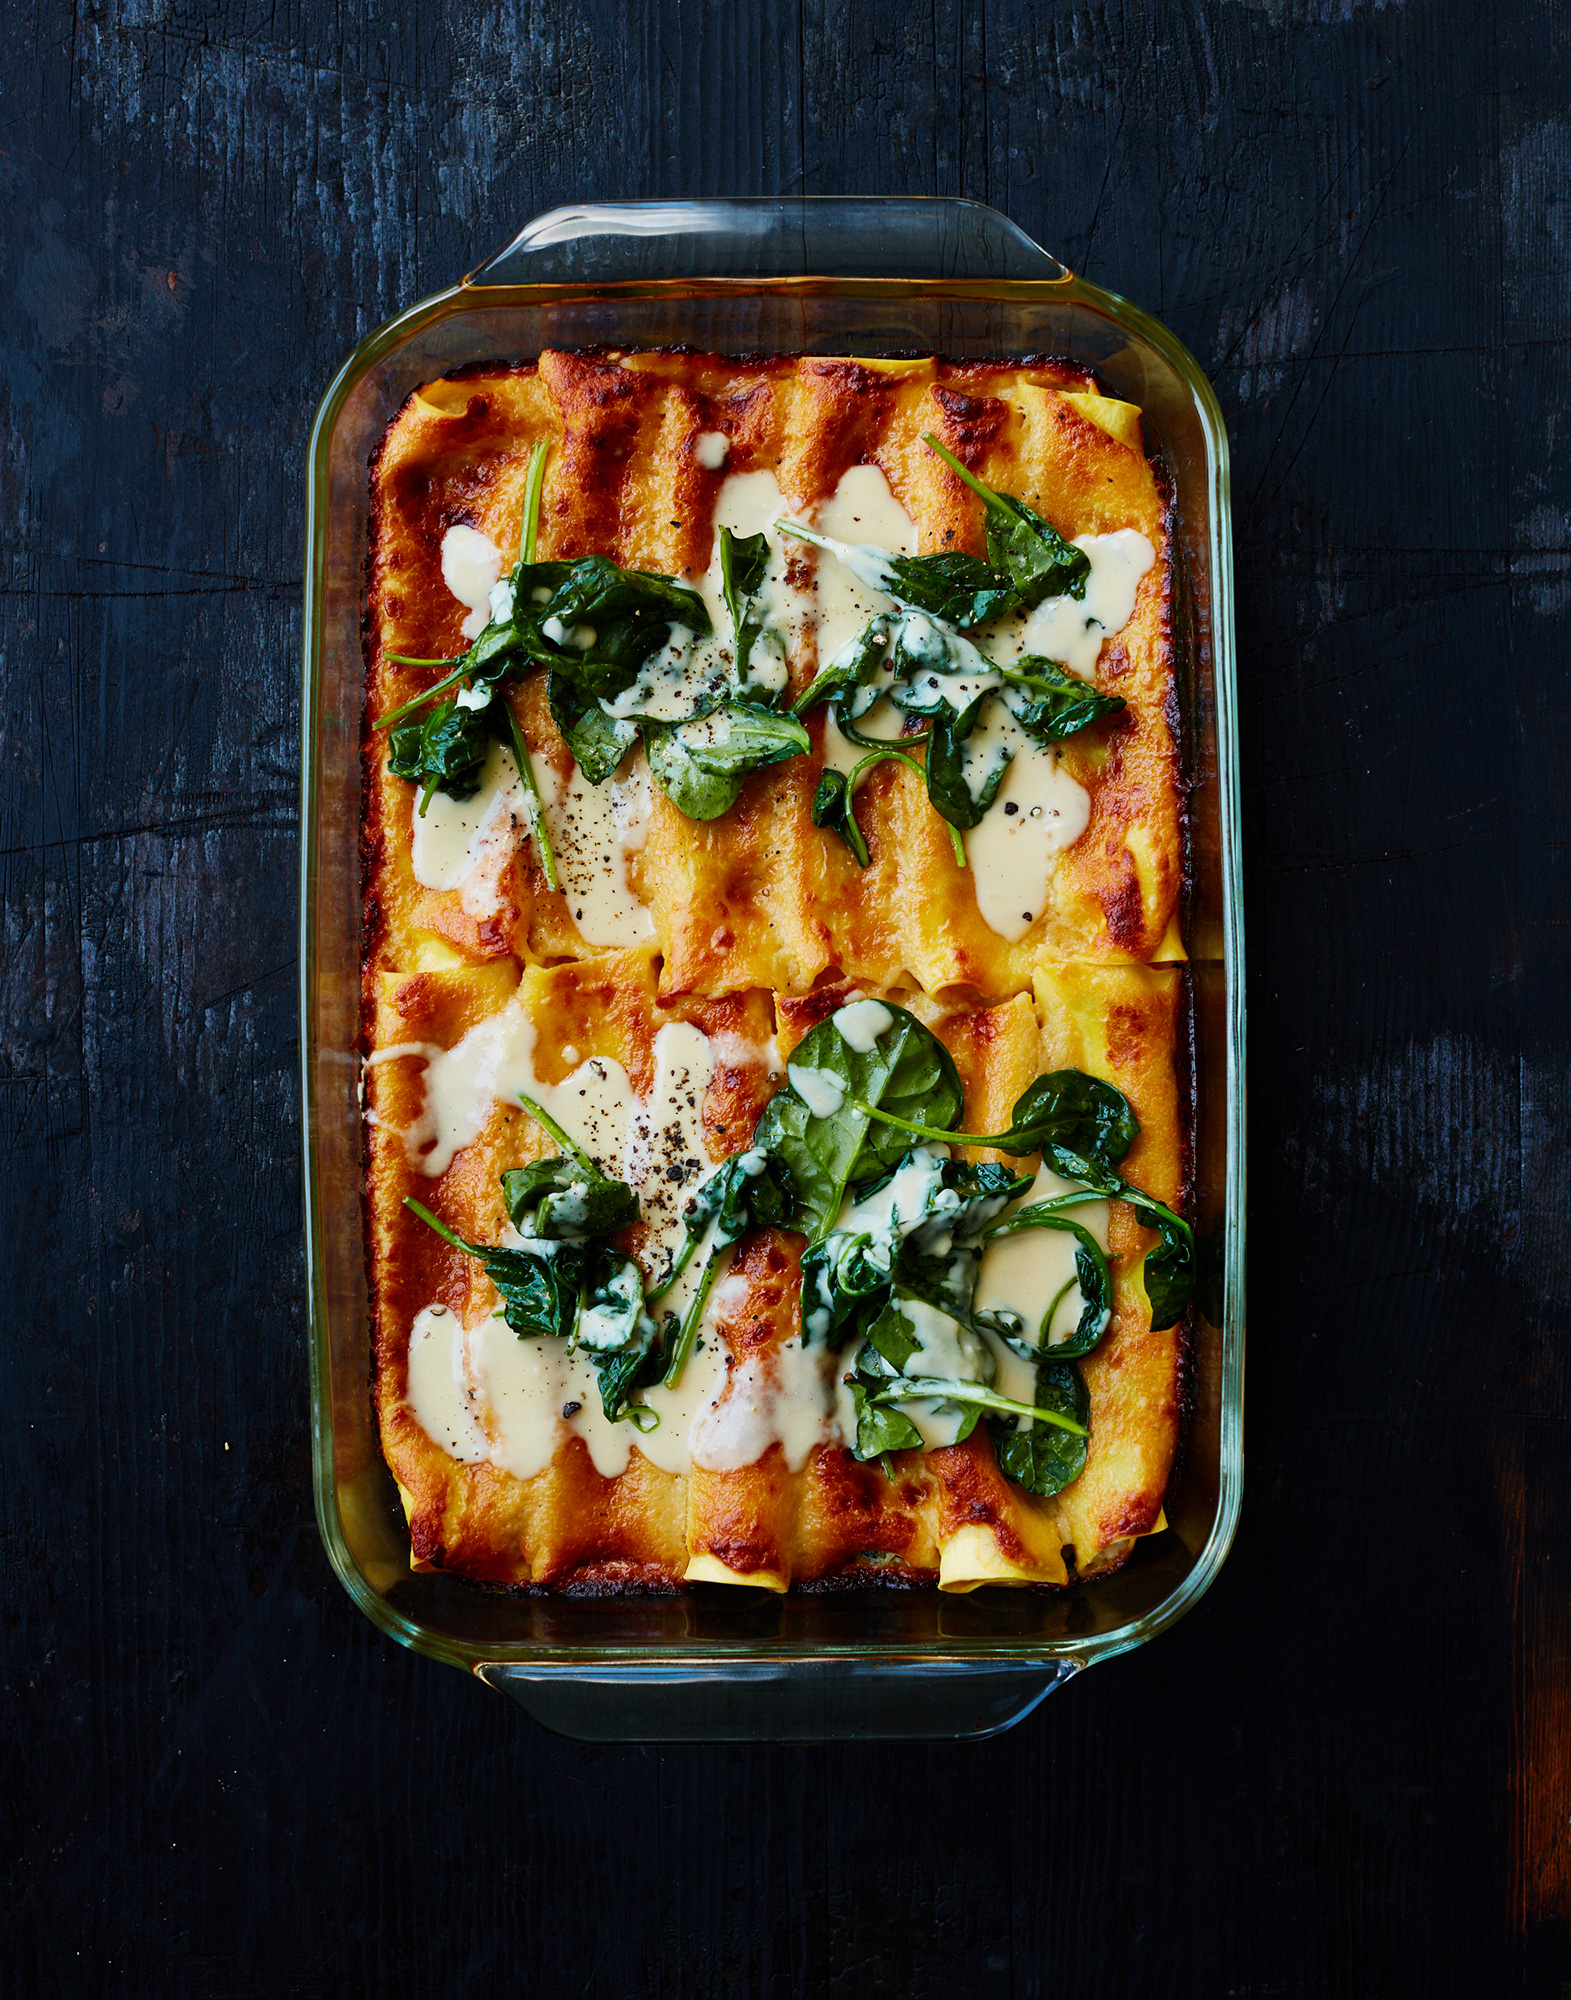 11_Spinach_Manicotti_with_Lemon_J_Miller_2567